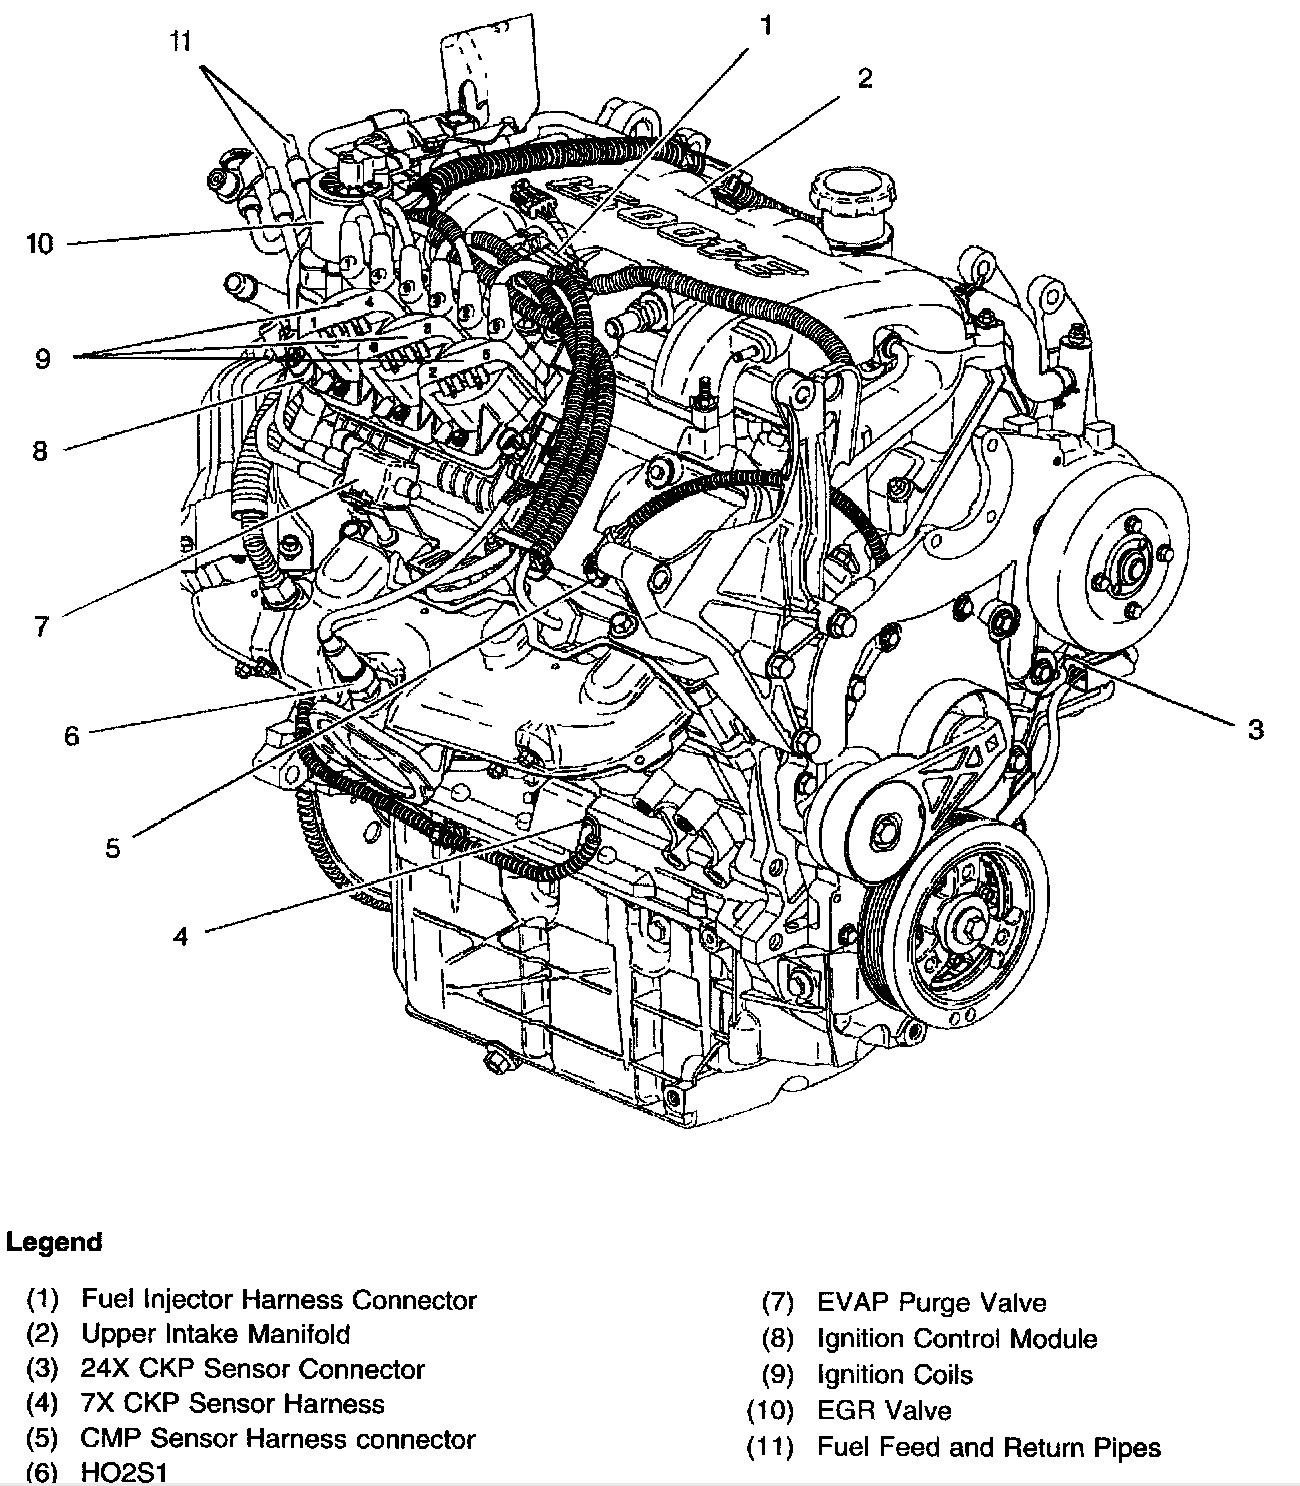 Chevy Cavalier Engine Diagram 2 4